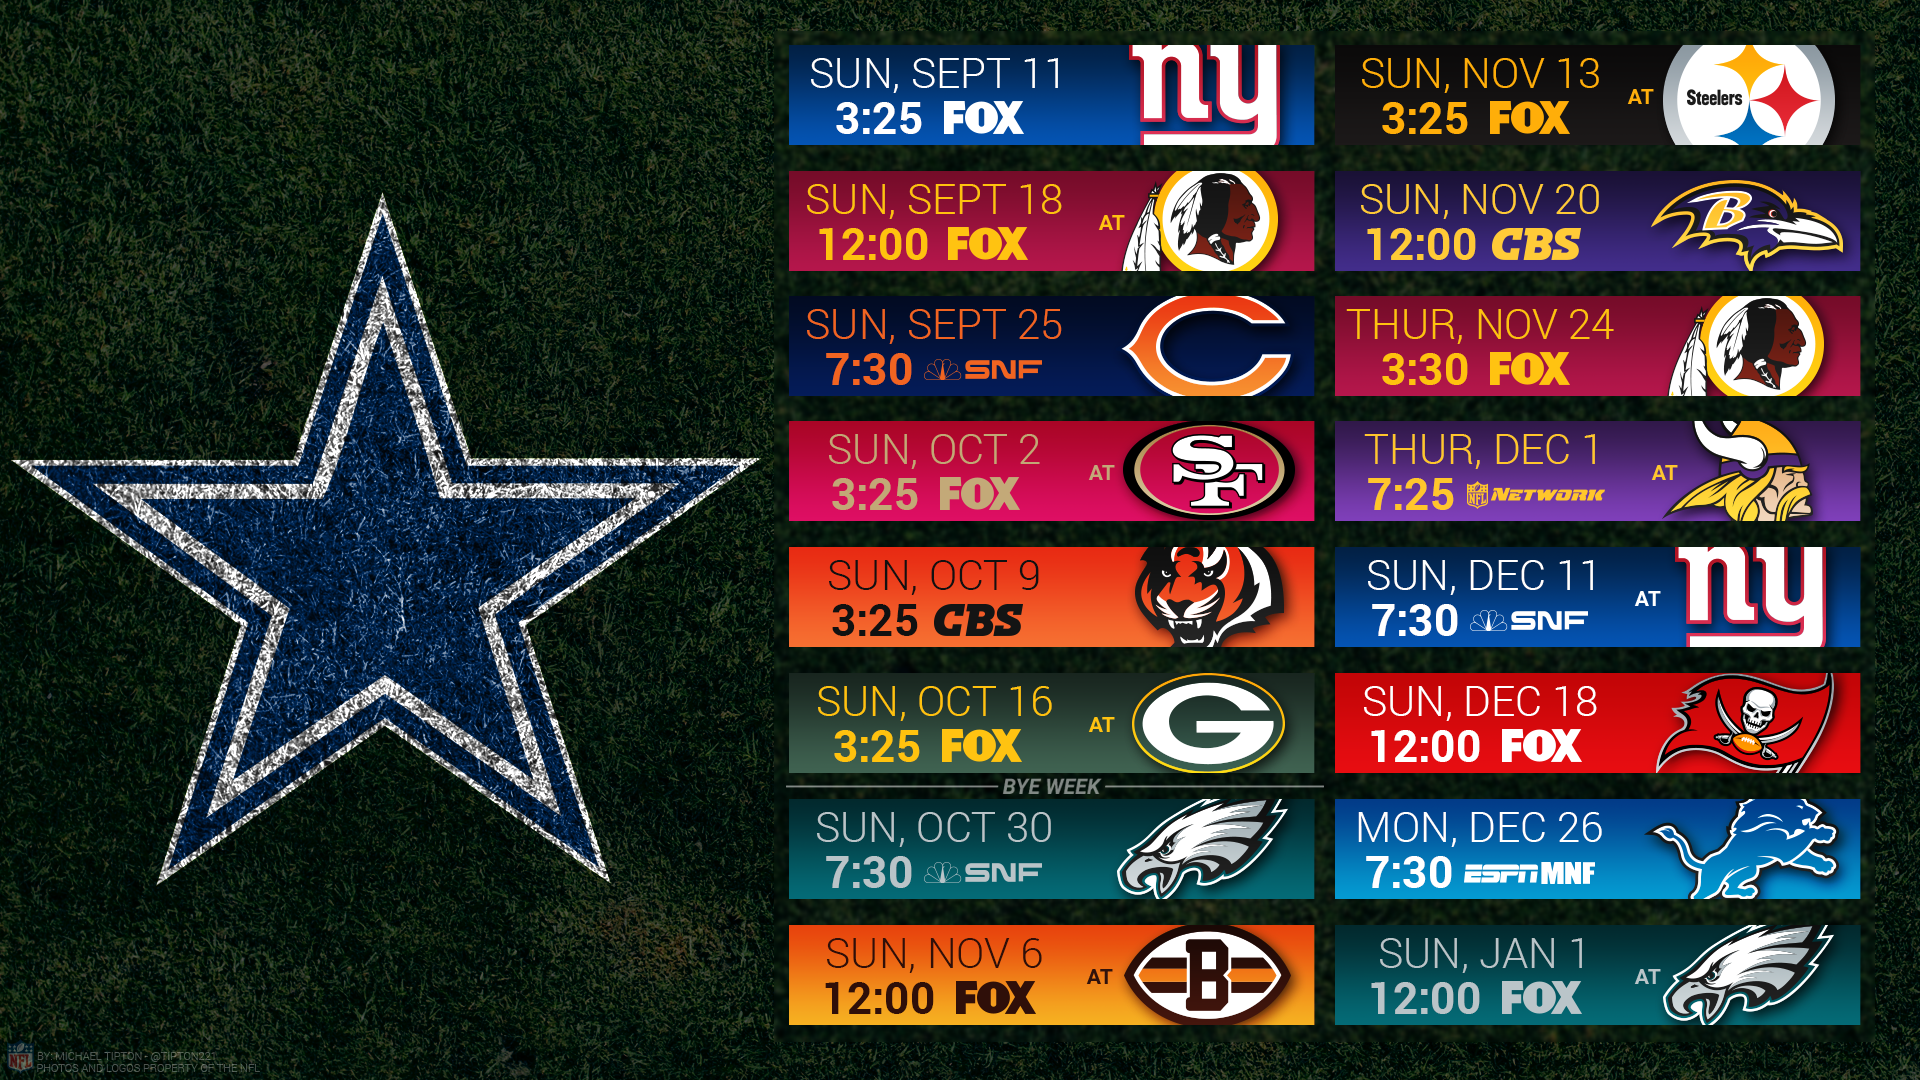 Dallas Cowboys 2017 HD 4k Schedule Wallpaper